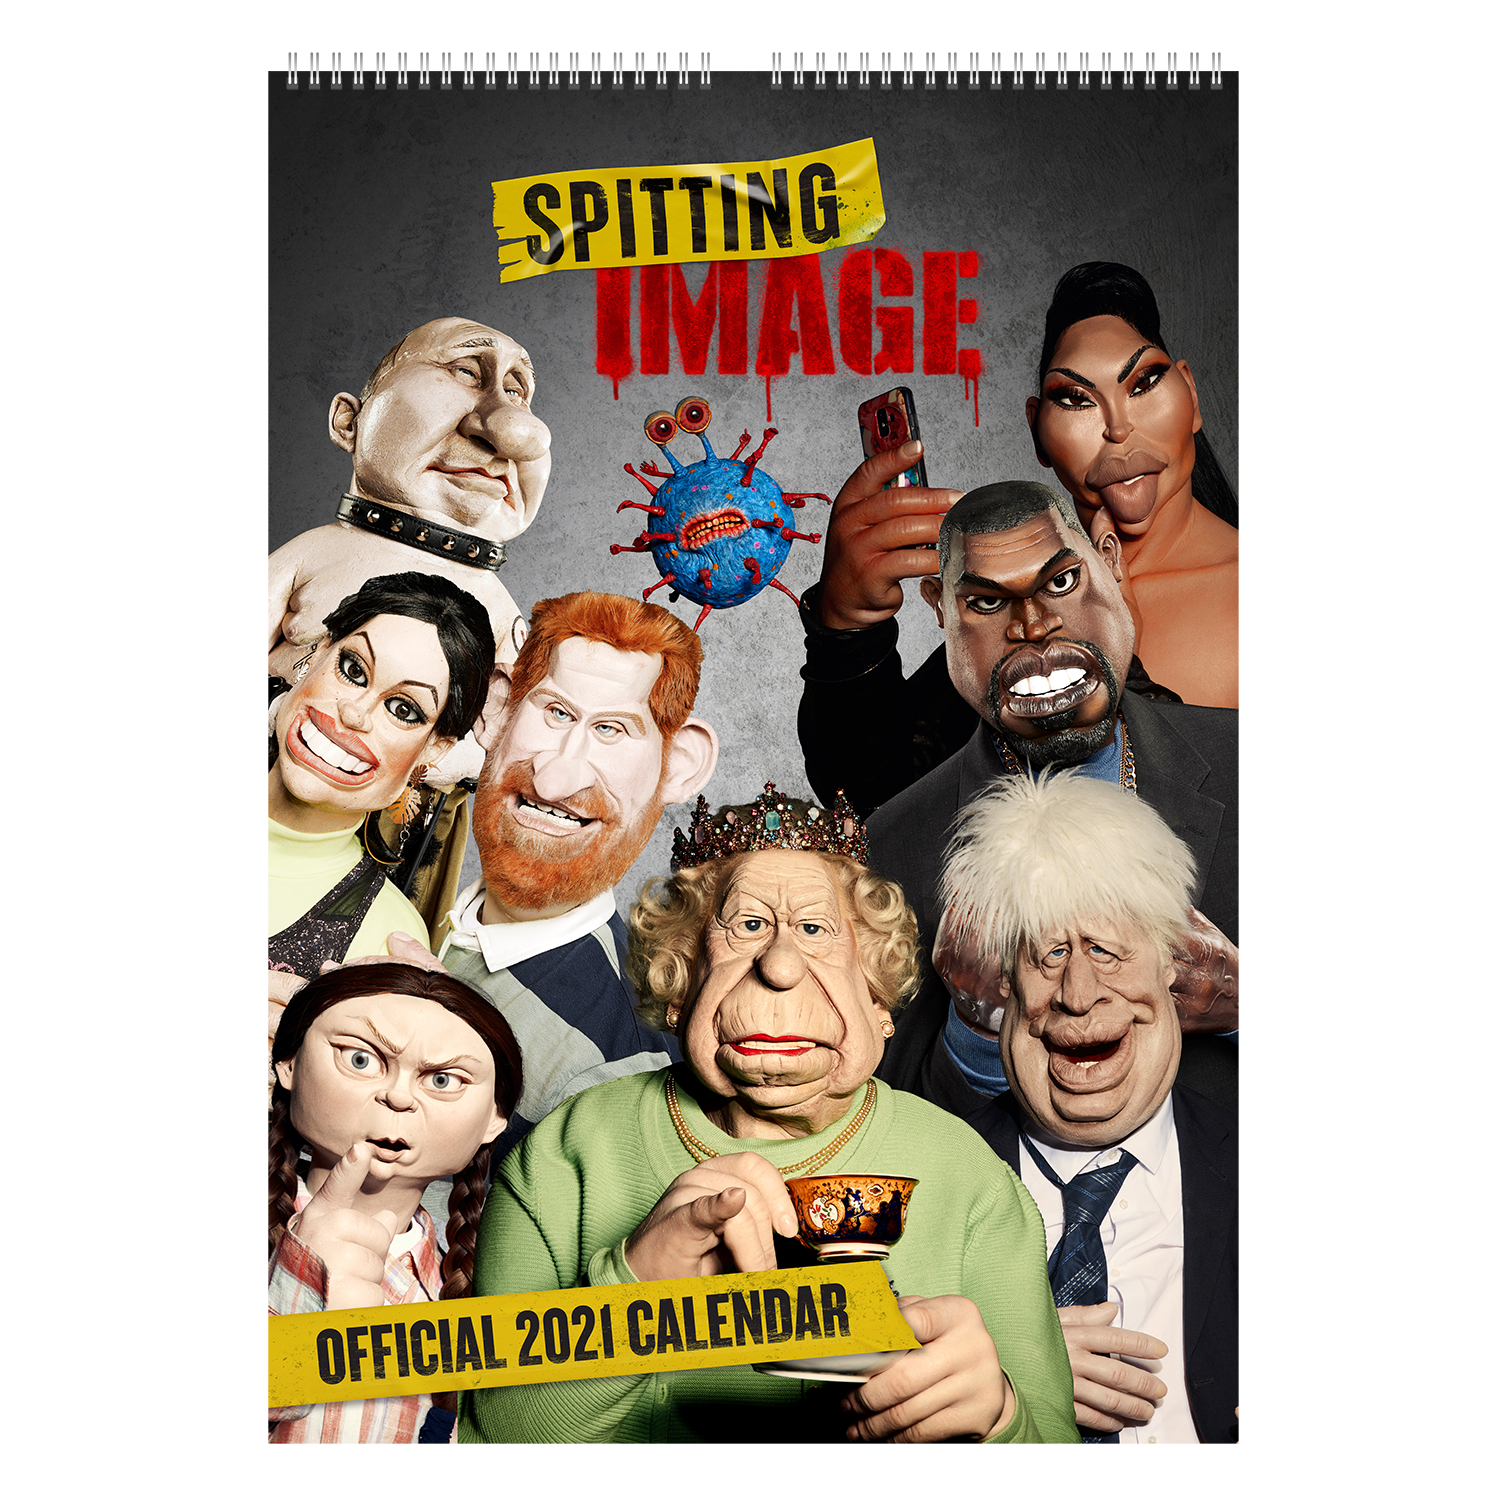 Spitting Image Official 2021 Calendar